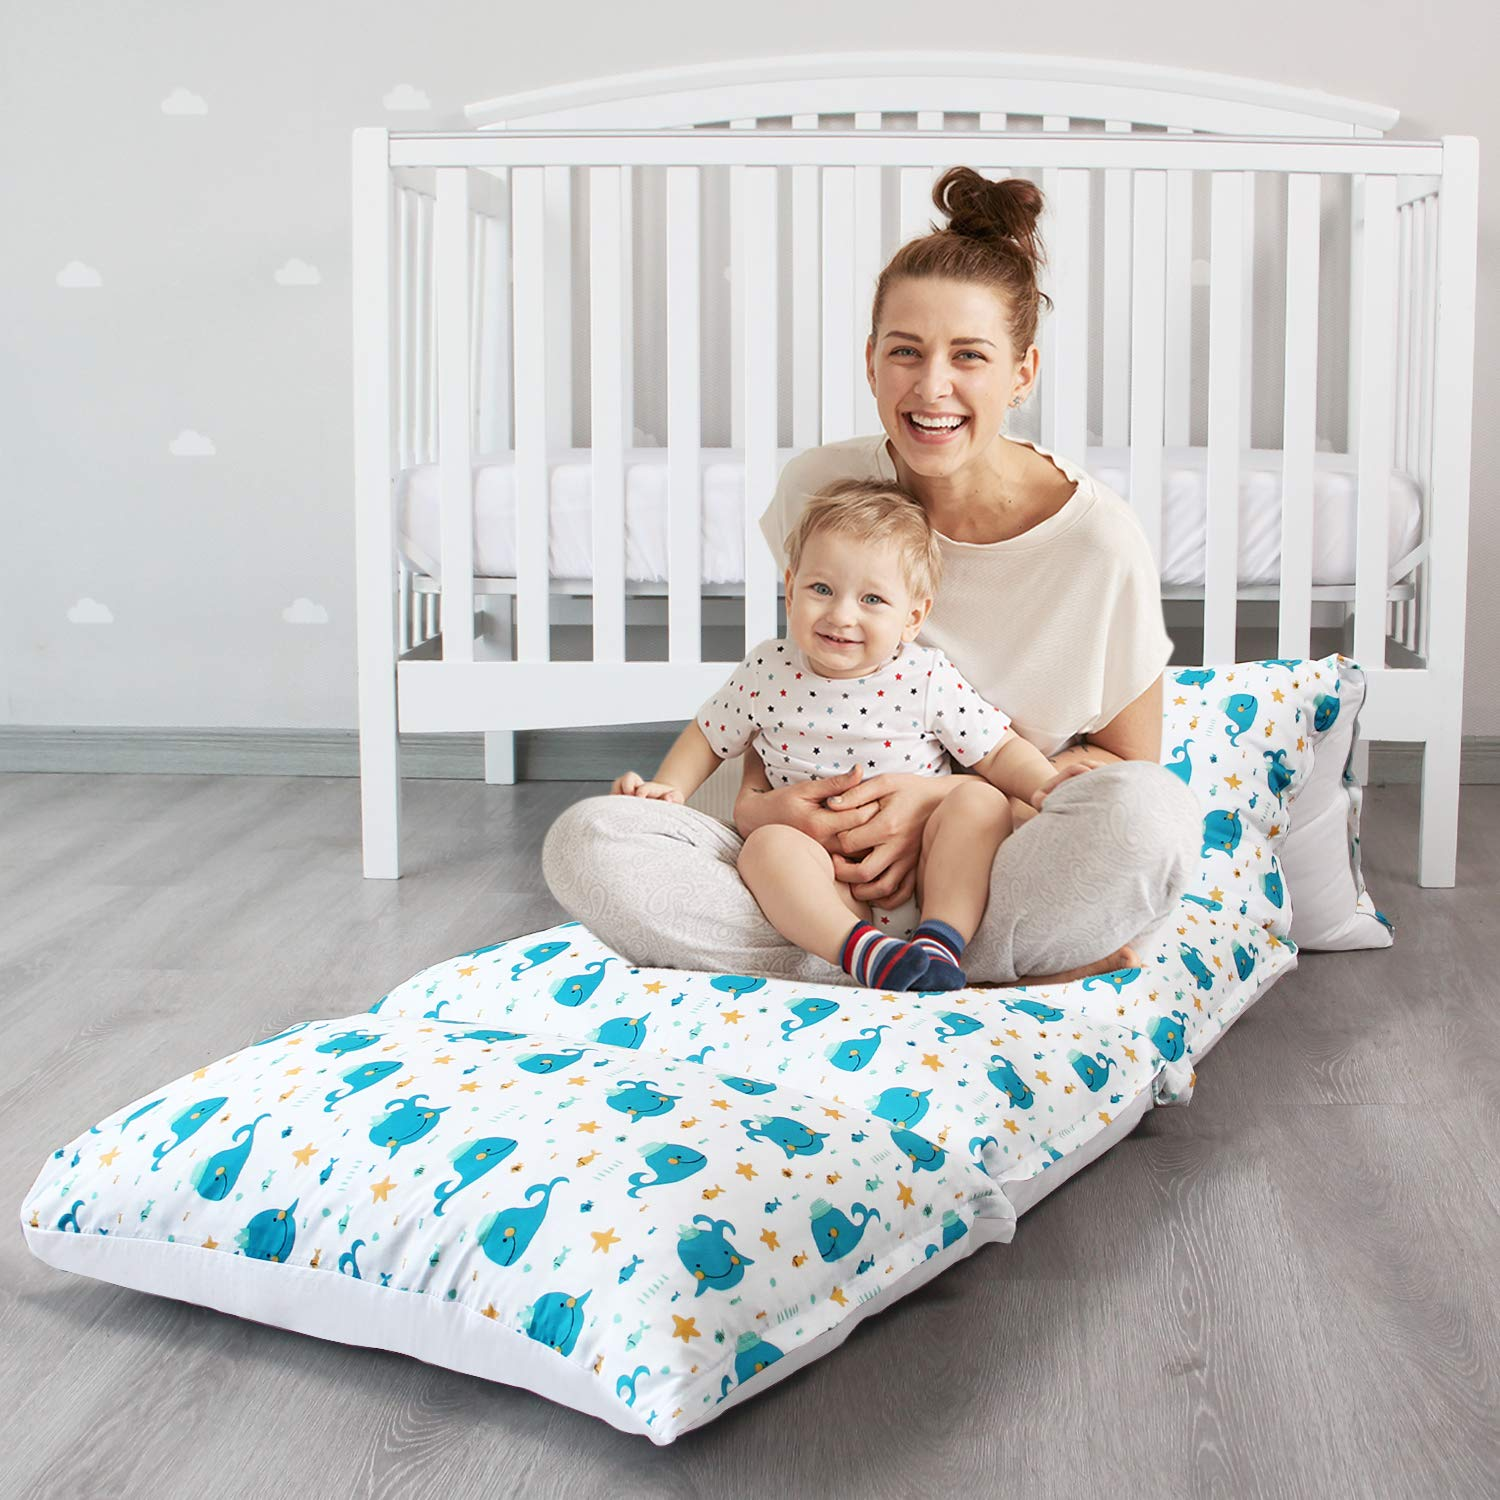 biloban kids floor pillow lounger cover cover only non slip and soft floor cushion for boys and girls floor bed floor couch fold out sofa bed